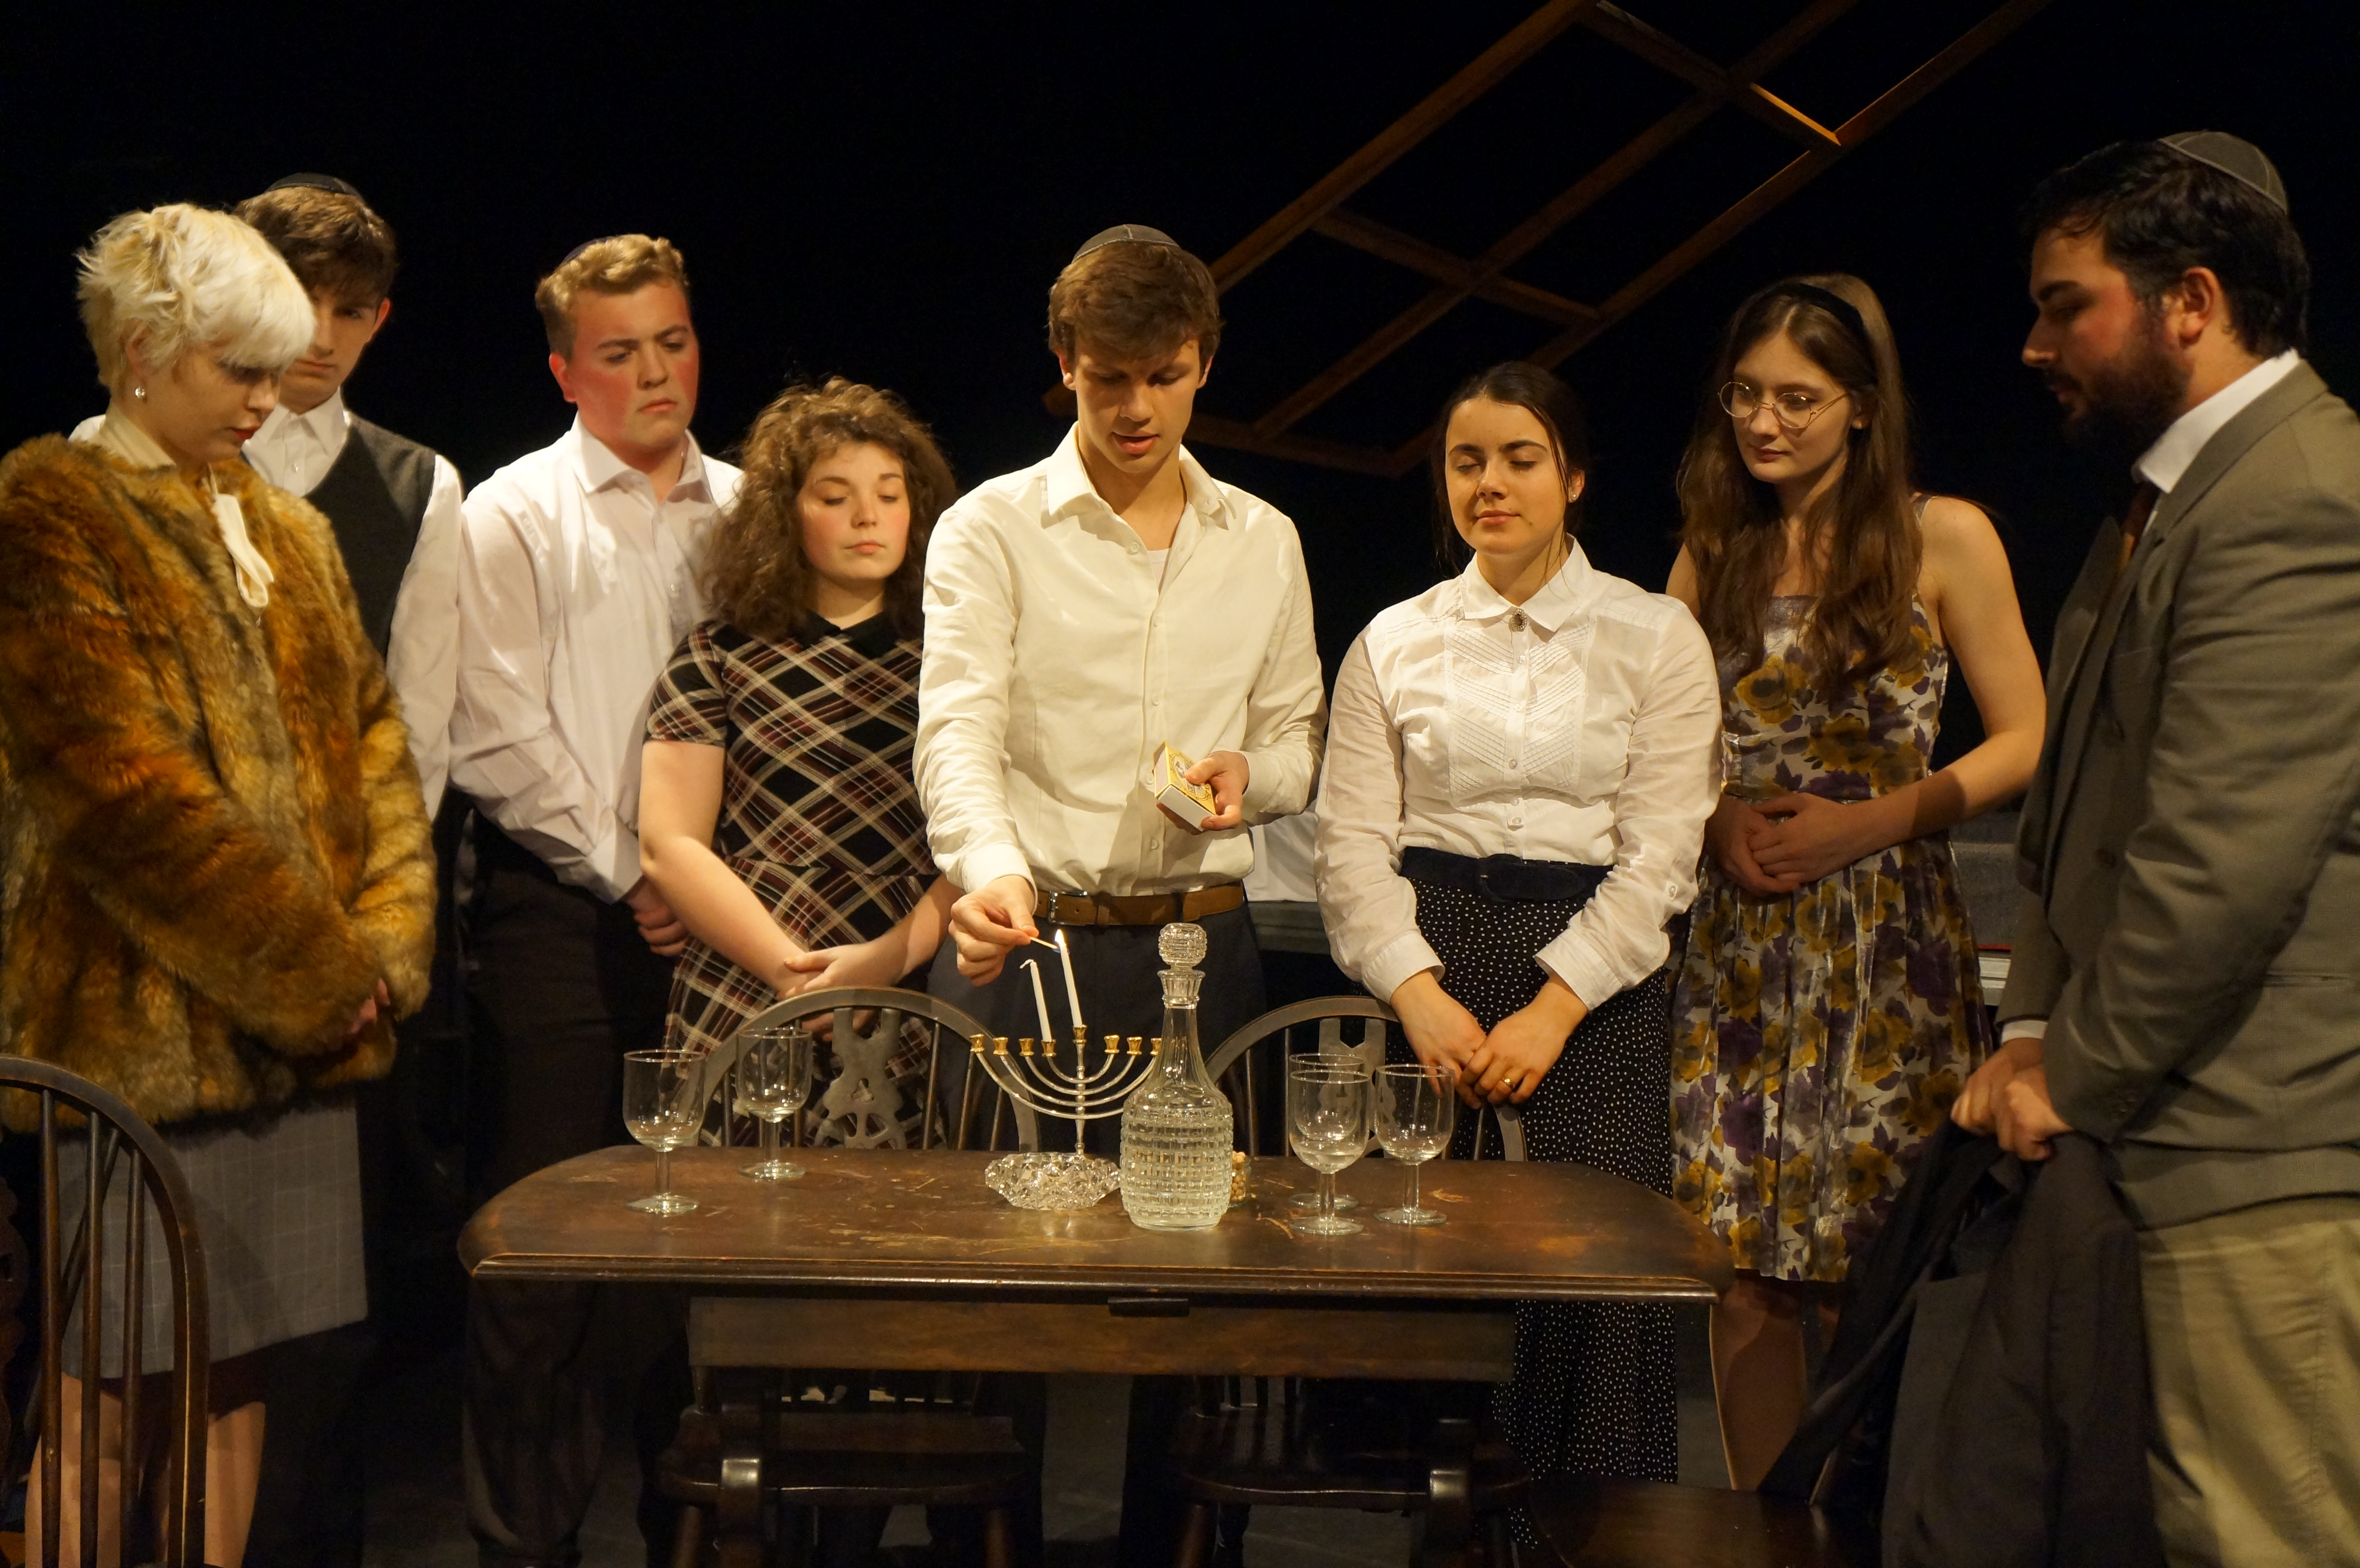 a review of the diary of anne frank Chicagocritic- highly recommended the diary of anne frank is a marvelous work worth another look the blocking and honesty of this cast makes director kimberly senior's production an.